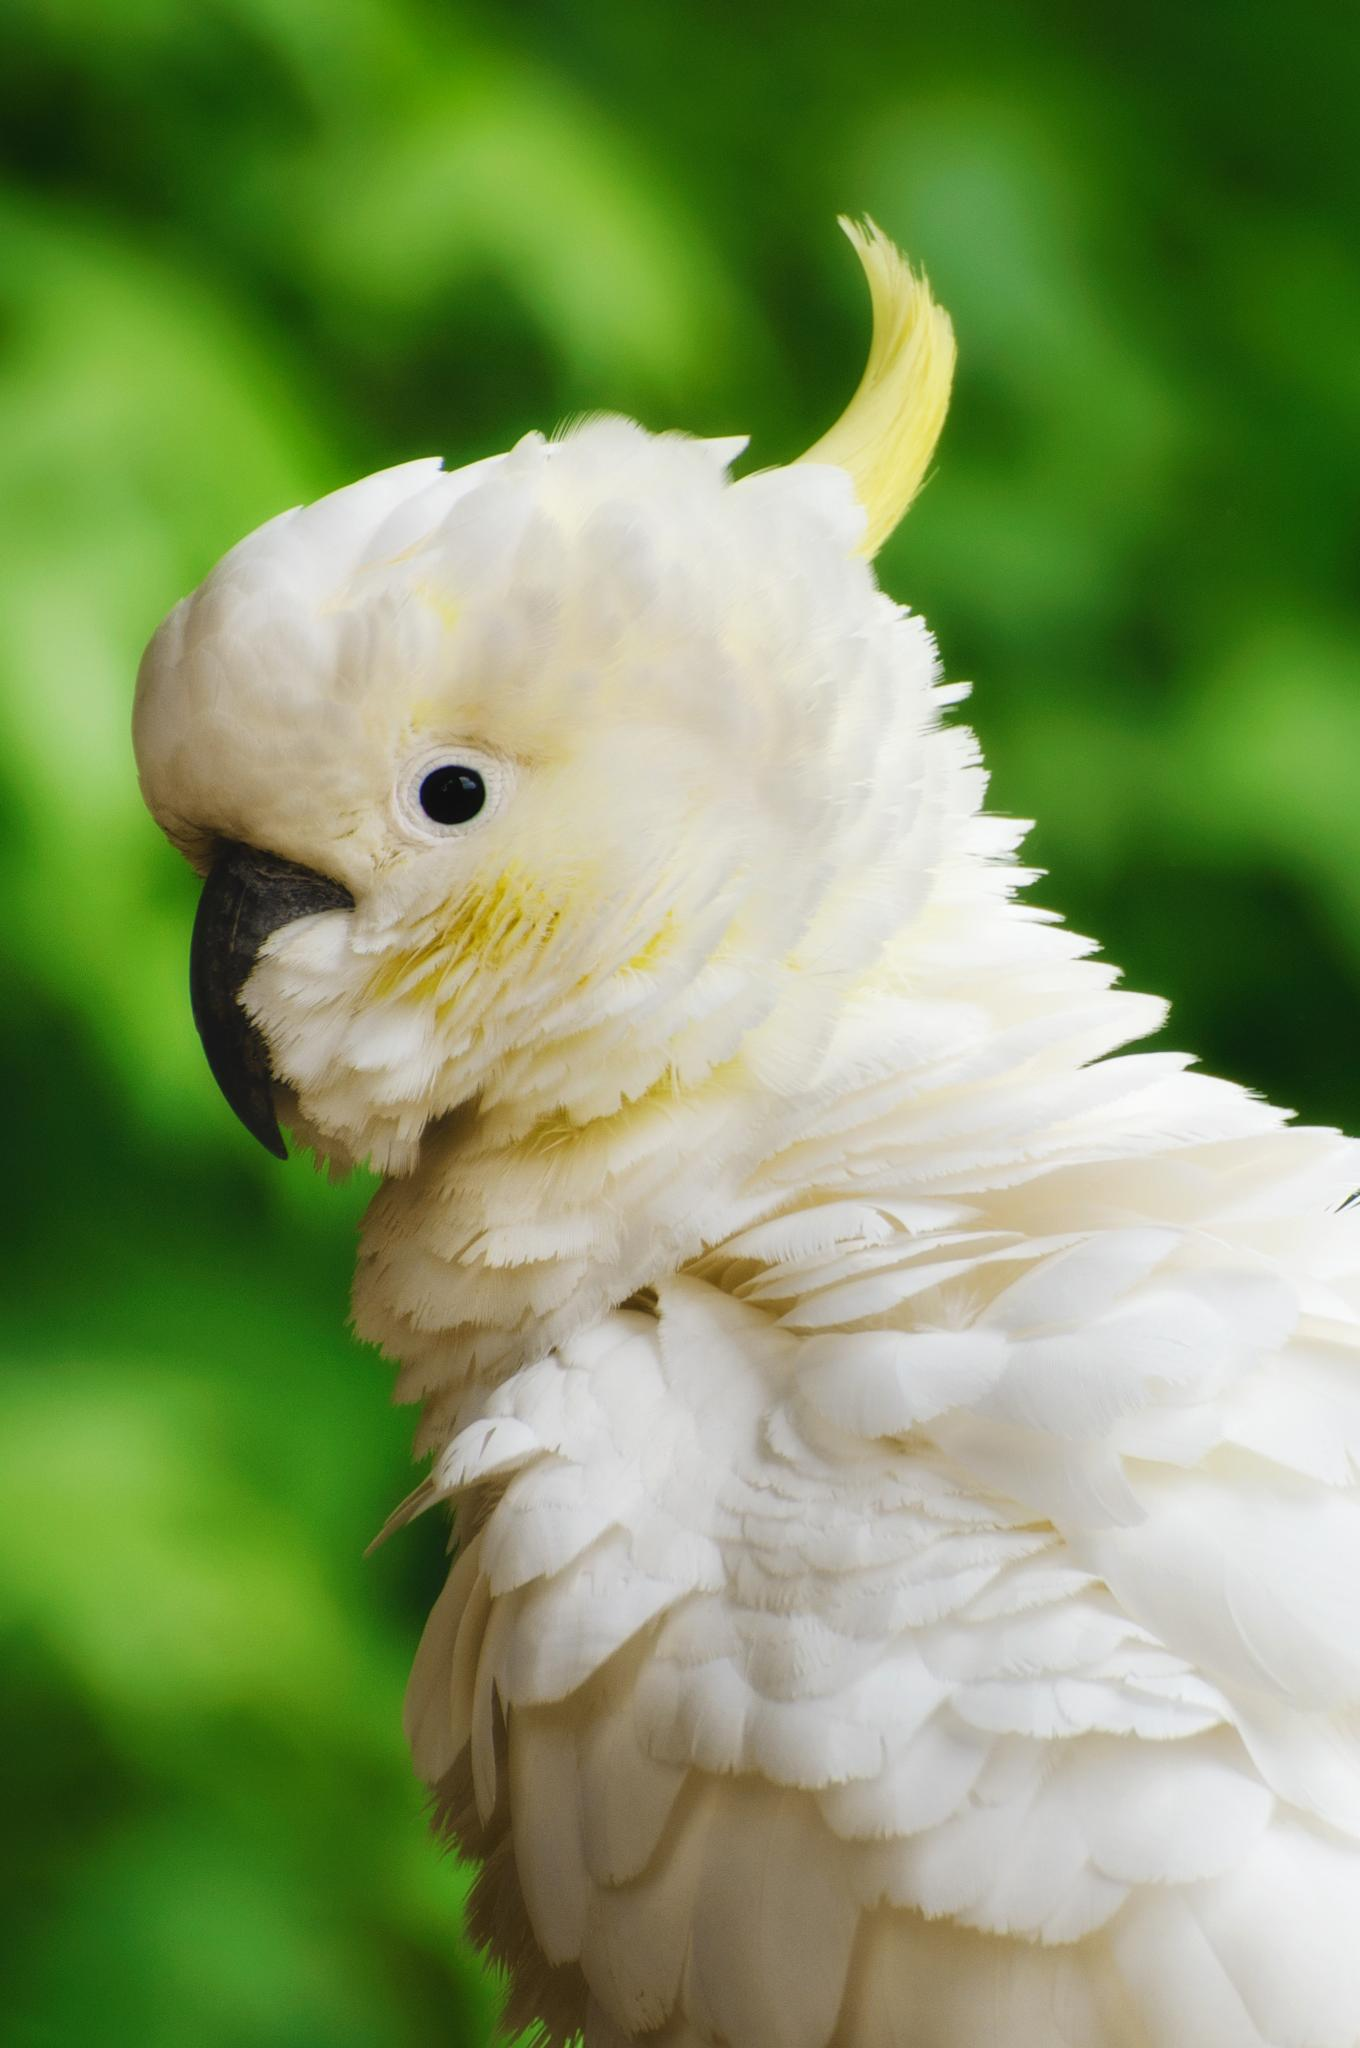 Sulphur-crested Cockatoo by Jacqueline Barkla